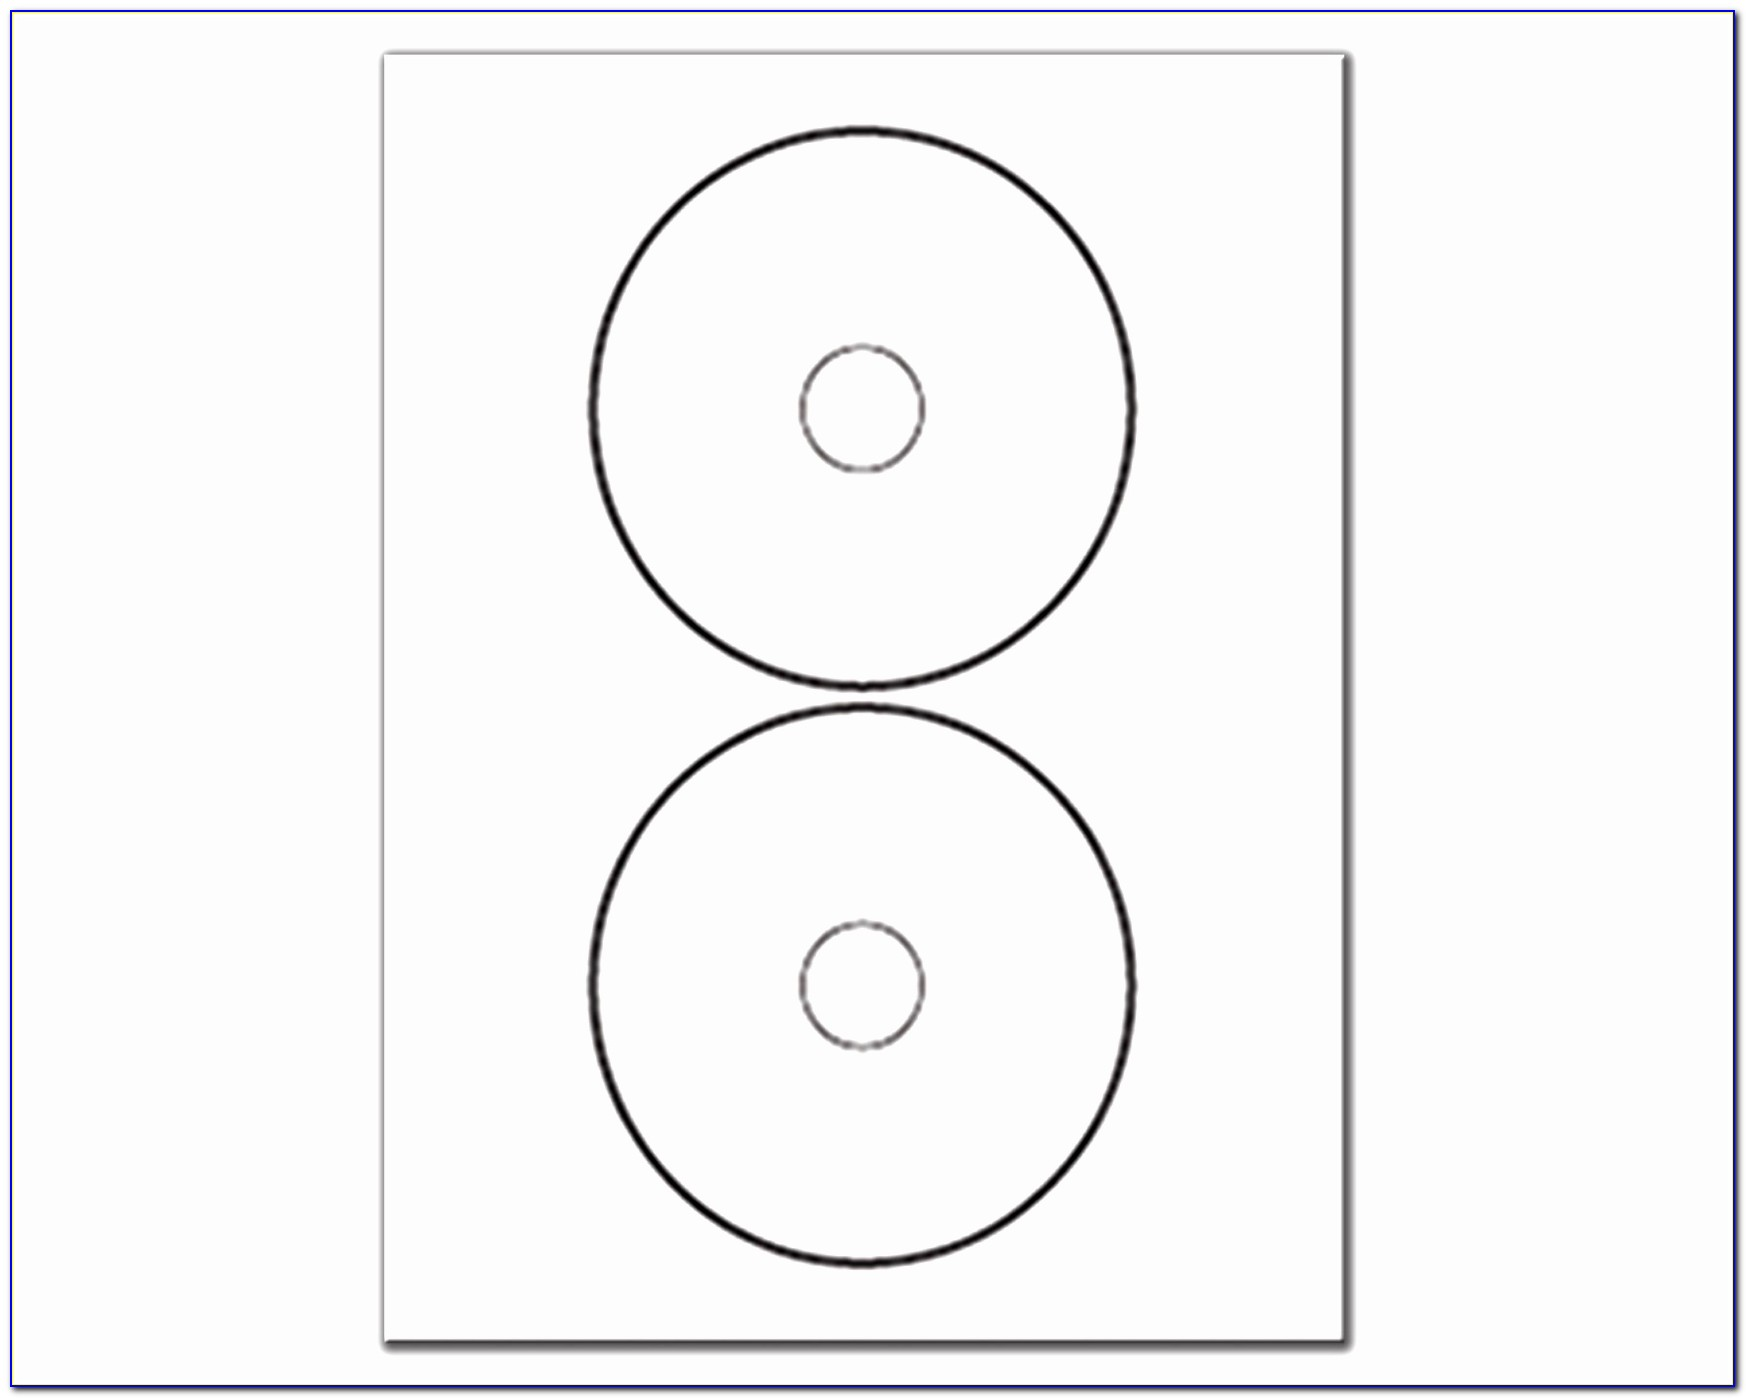 2 Up Cd Dvd Labels Mcd450w 1 Package Cd Dvd Labels Simple Staples Cd Label Template Word Lovely Pdf Word Excel Templates Aprou